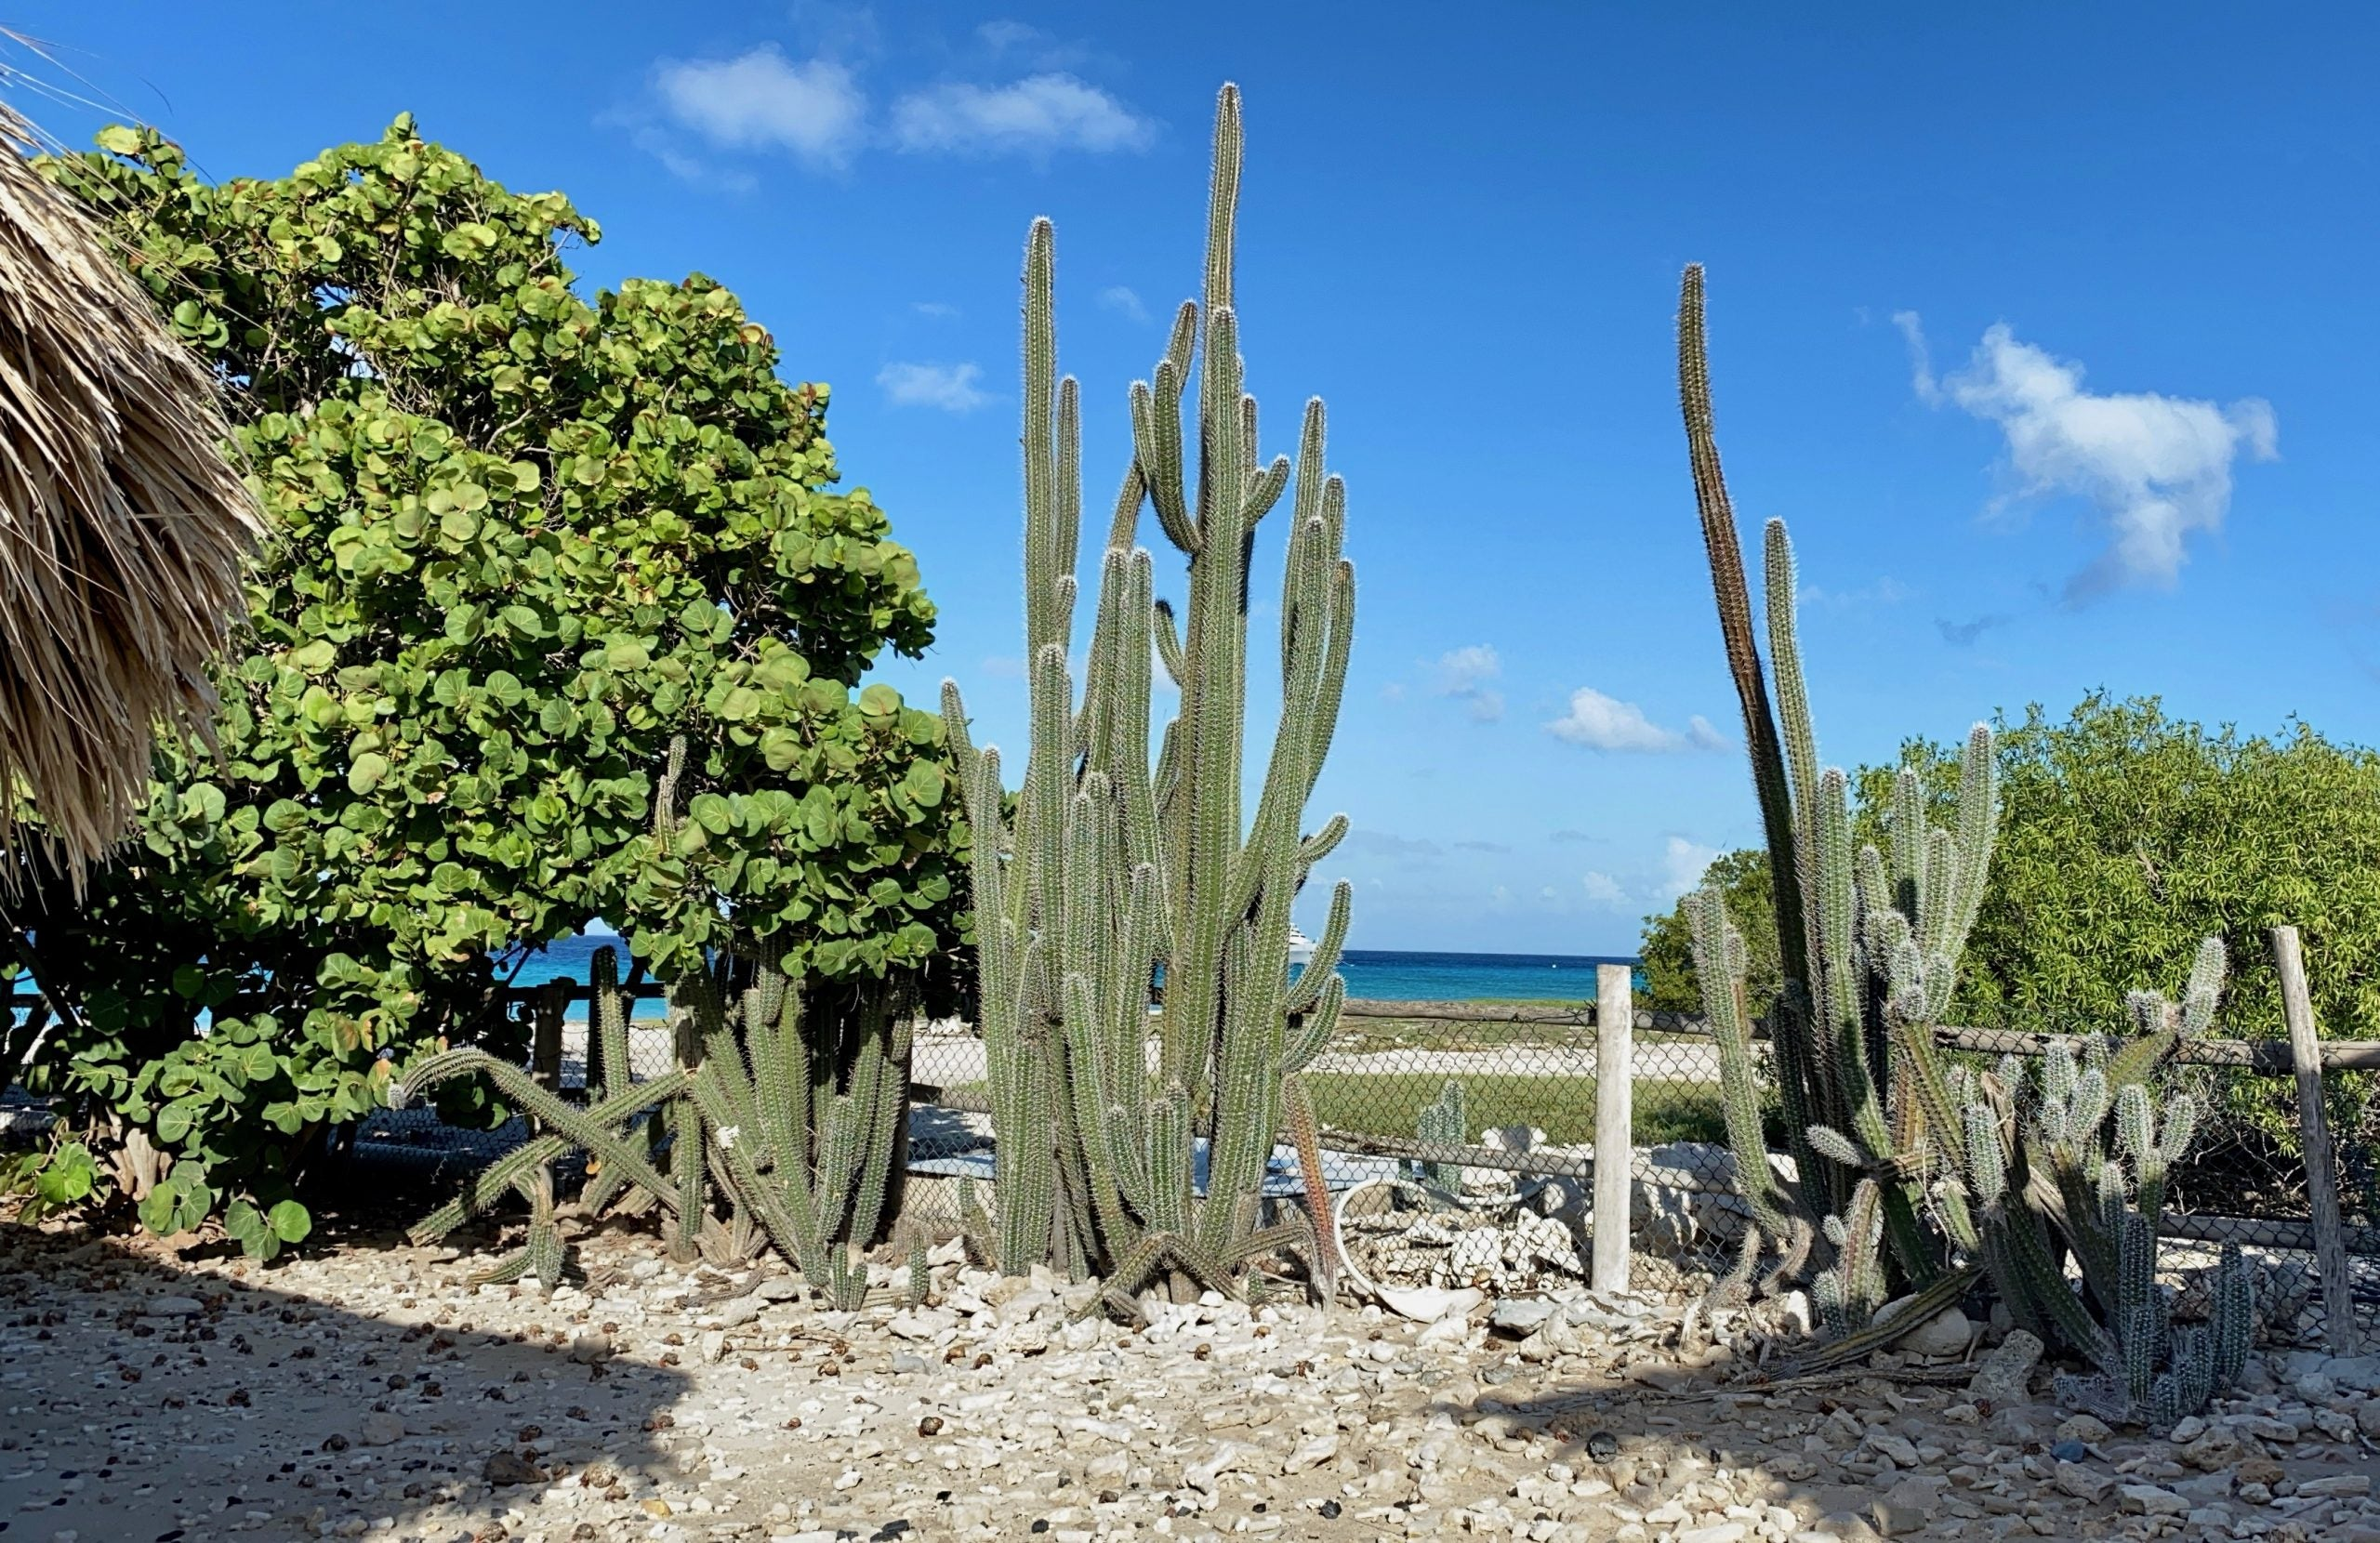 Scenery in Curacao